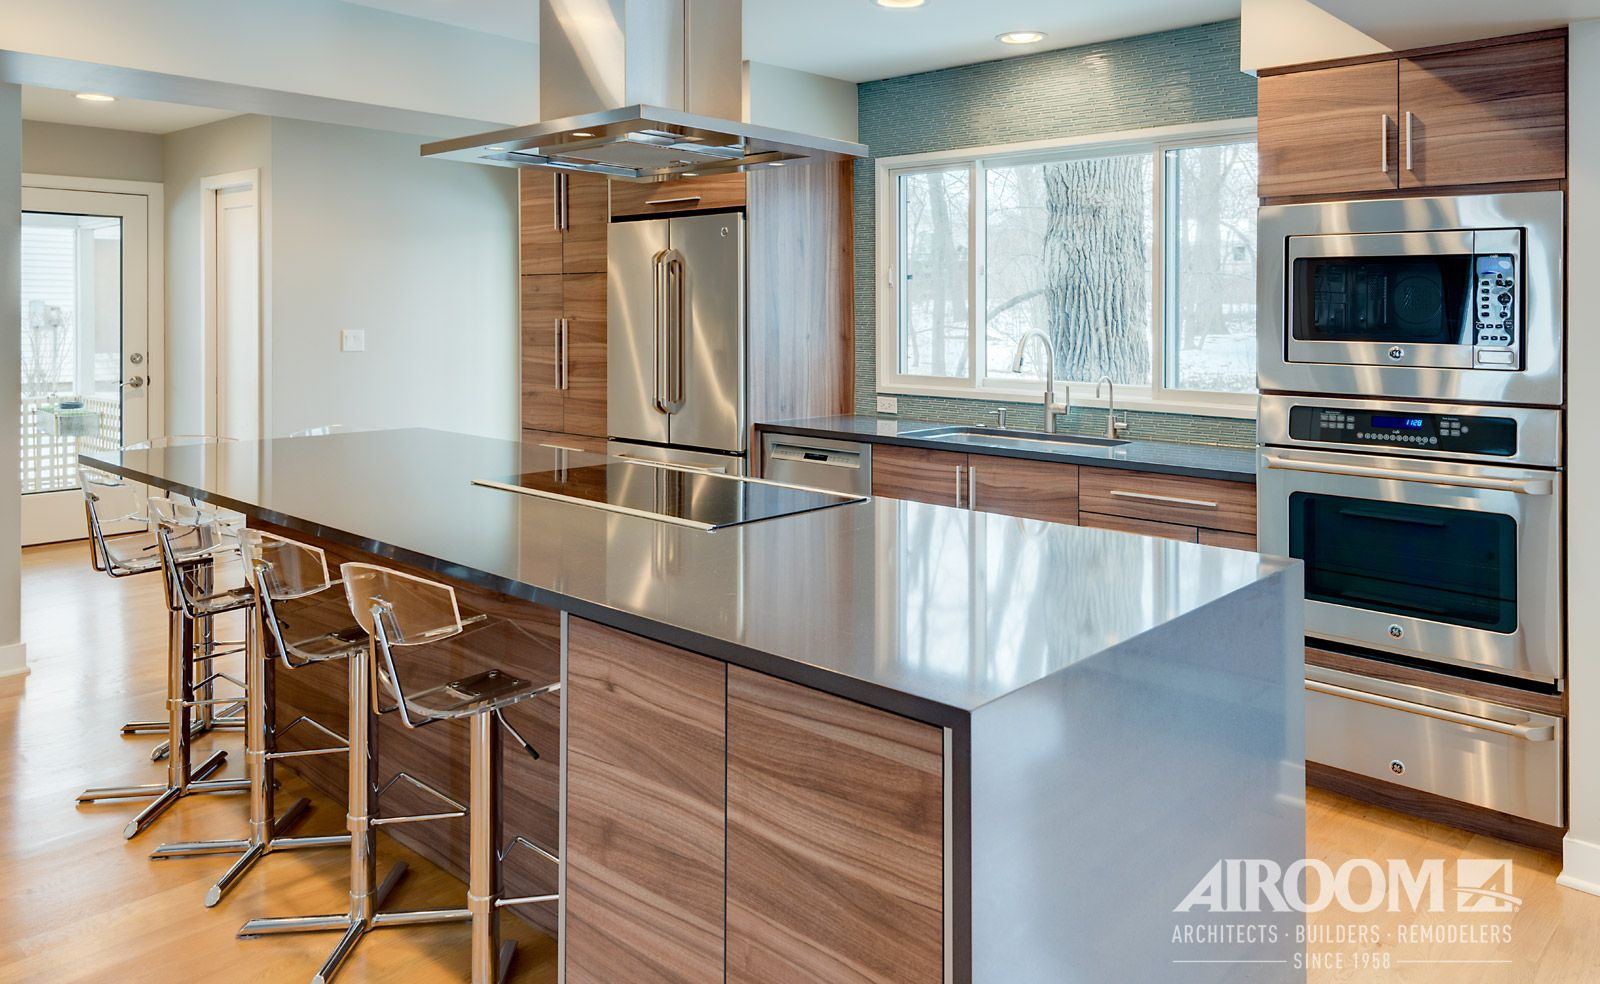 downers grove kitchen remodeling (with images) | kitchen